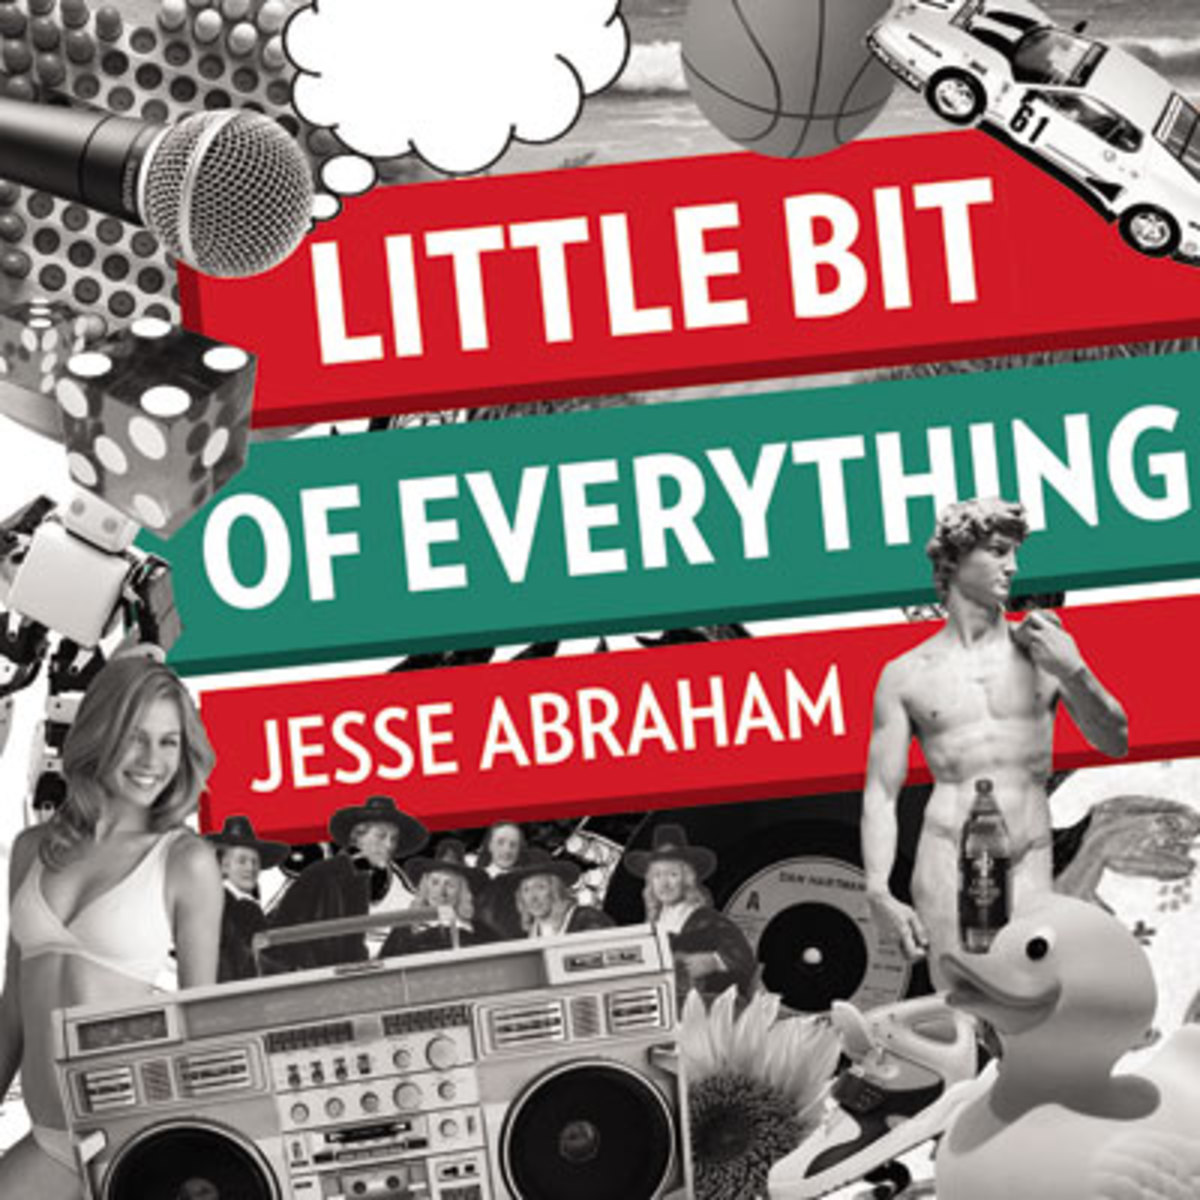 jesseabraham-littlebitofeverything.jpg